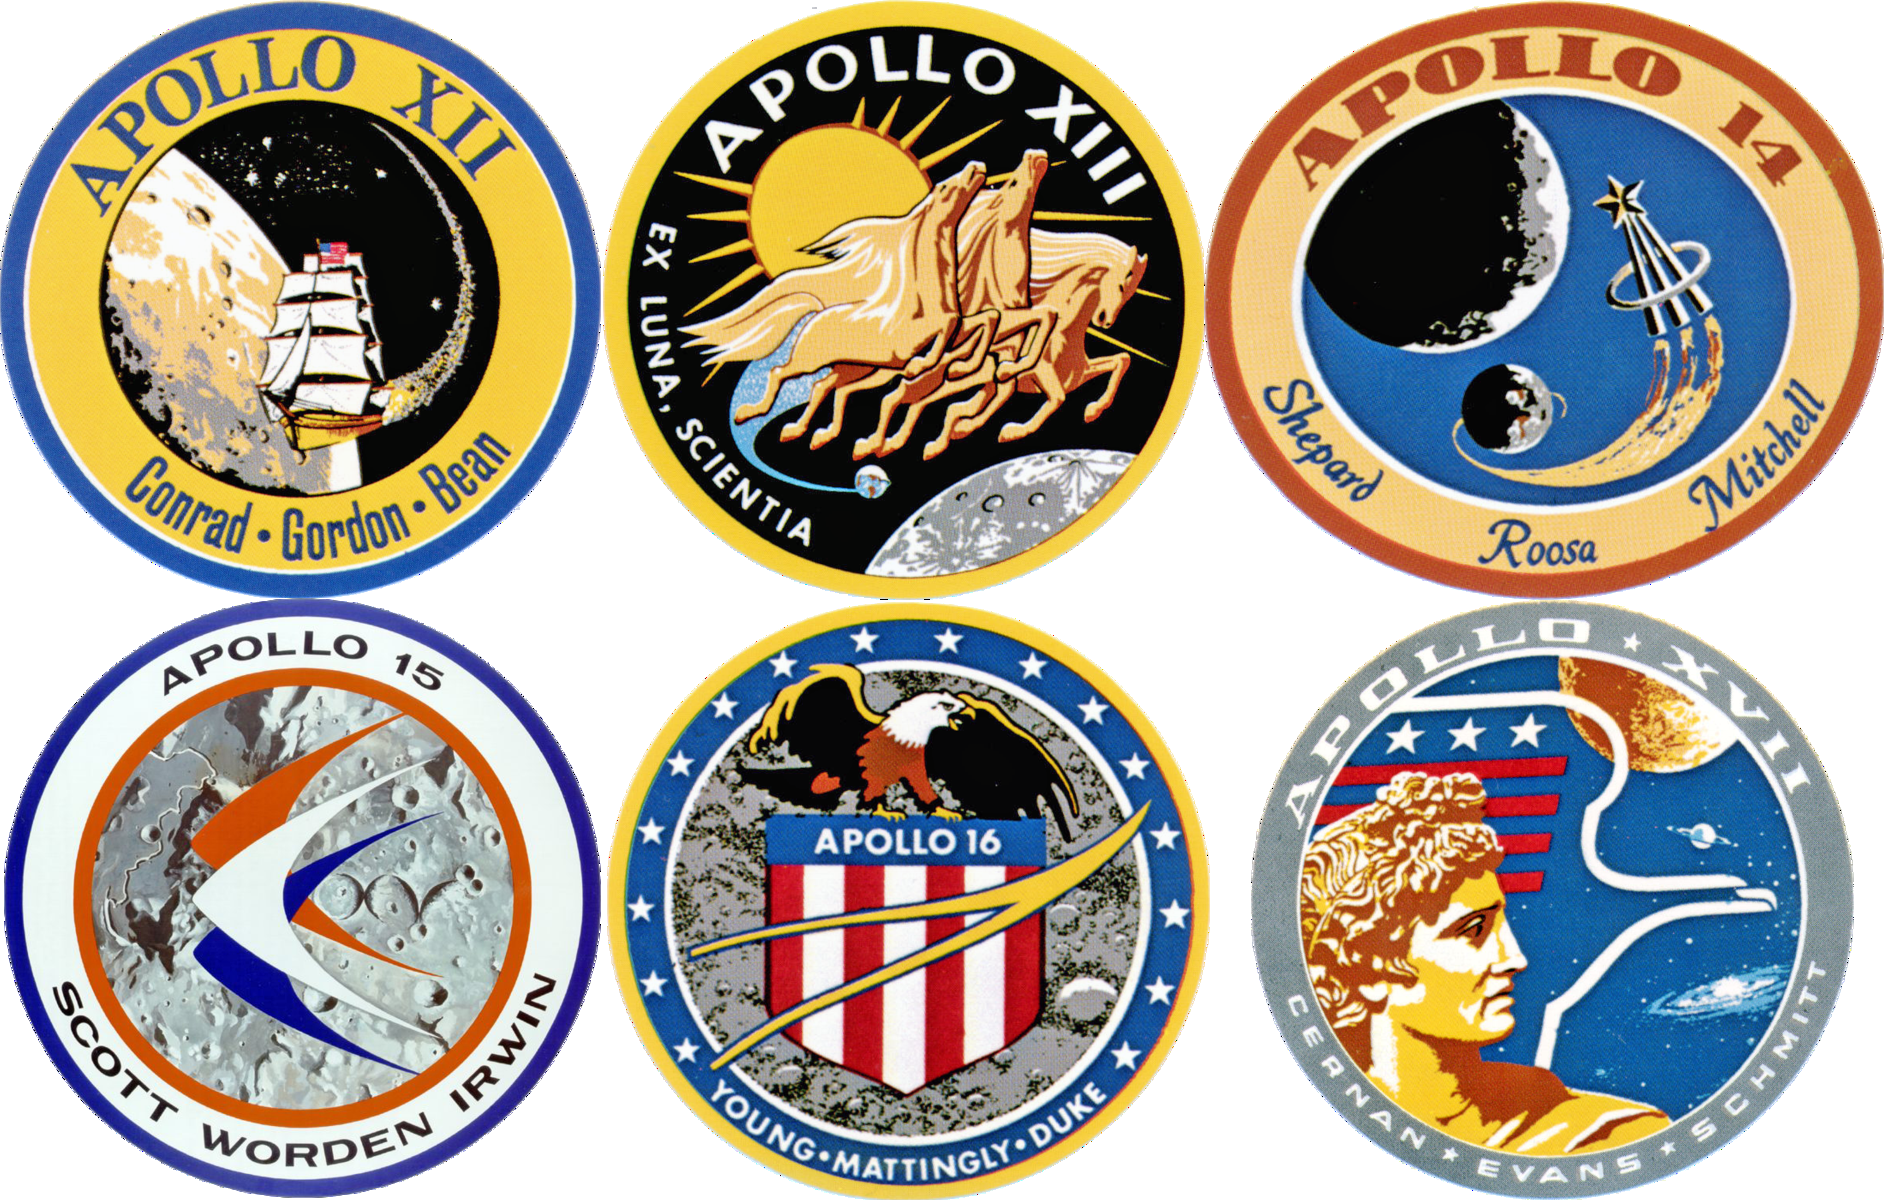 Apollo mission patches in order